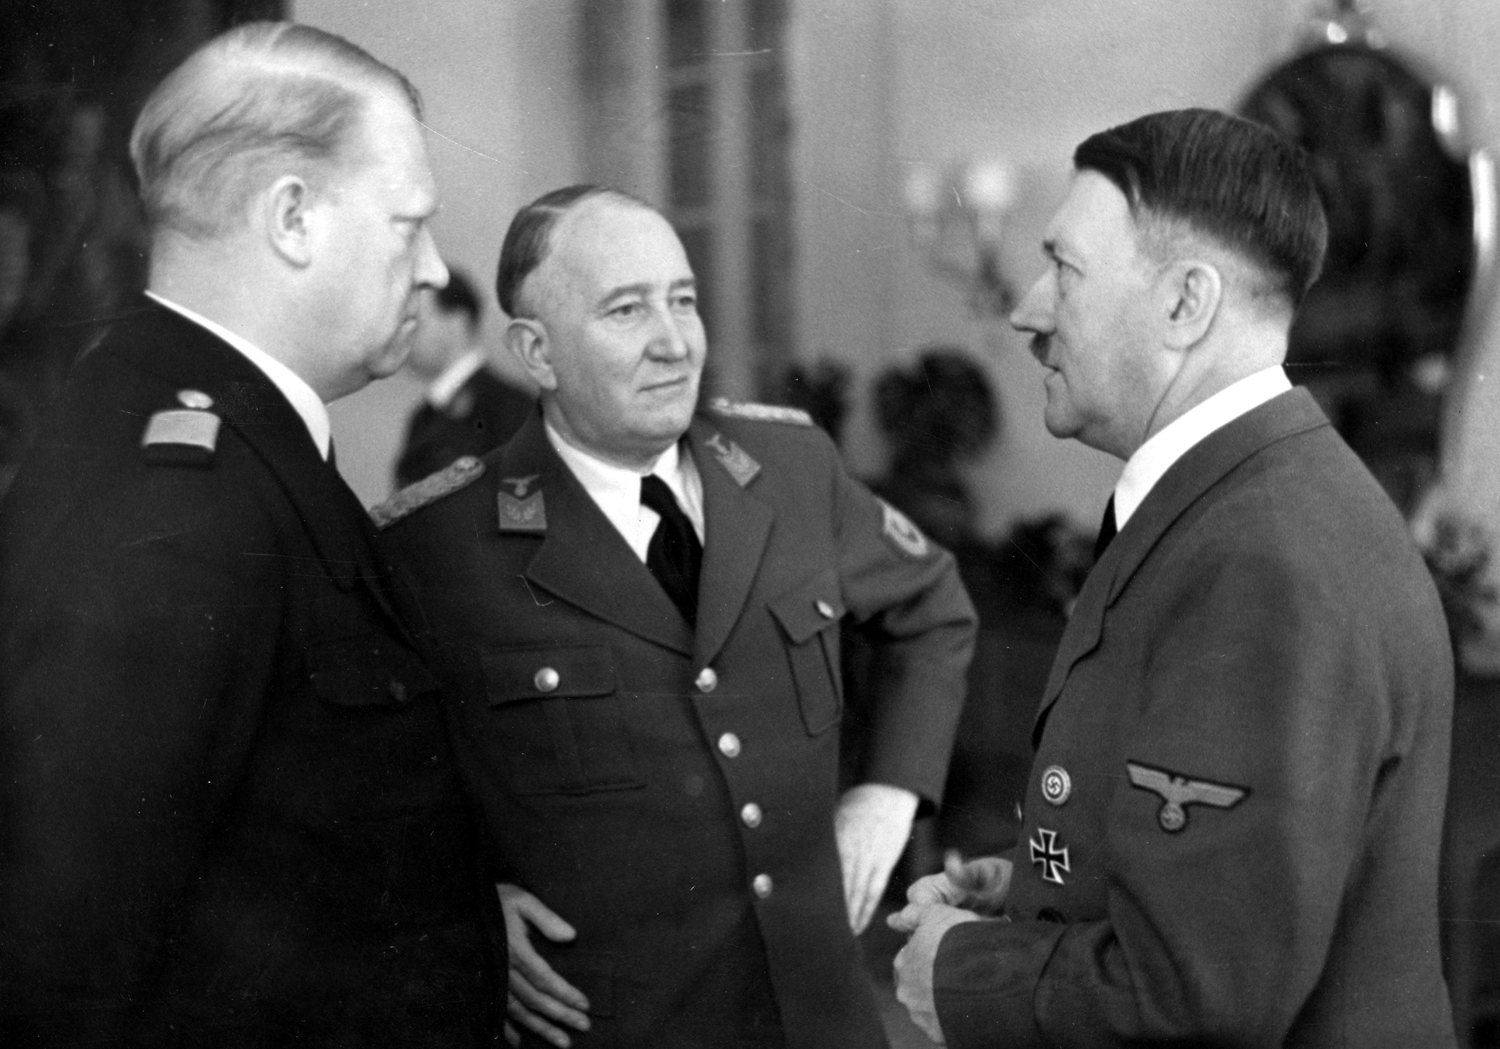 Adolf Hitler meets the Norwegian Prime Minister Vidkun Quisling and the Reich Commissioner Josef Terboven